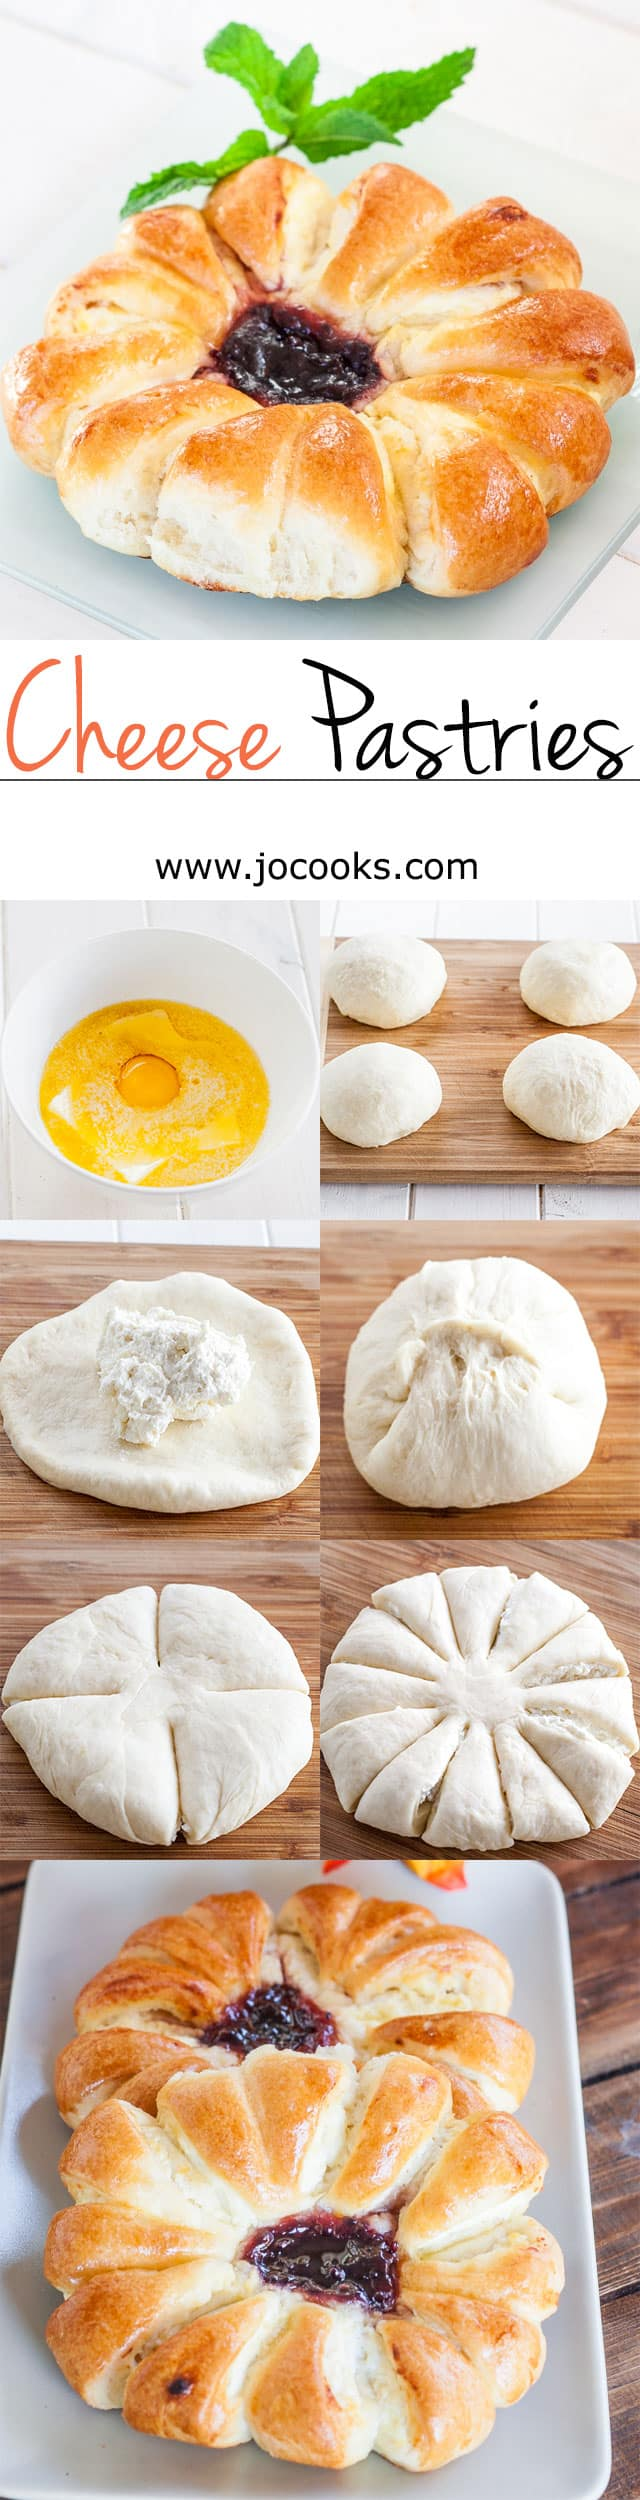 Step shots of Cheese Pastries